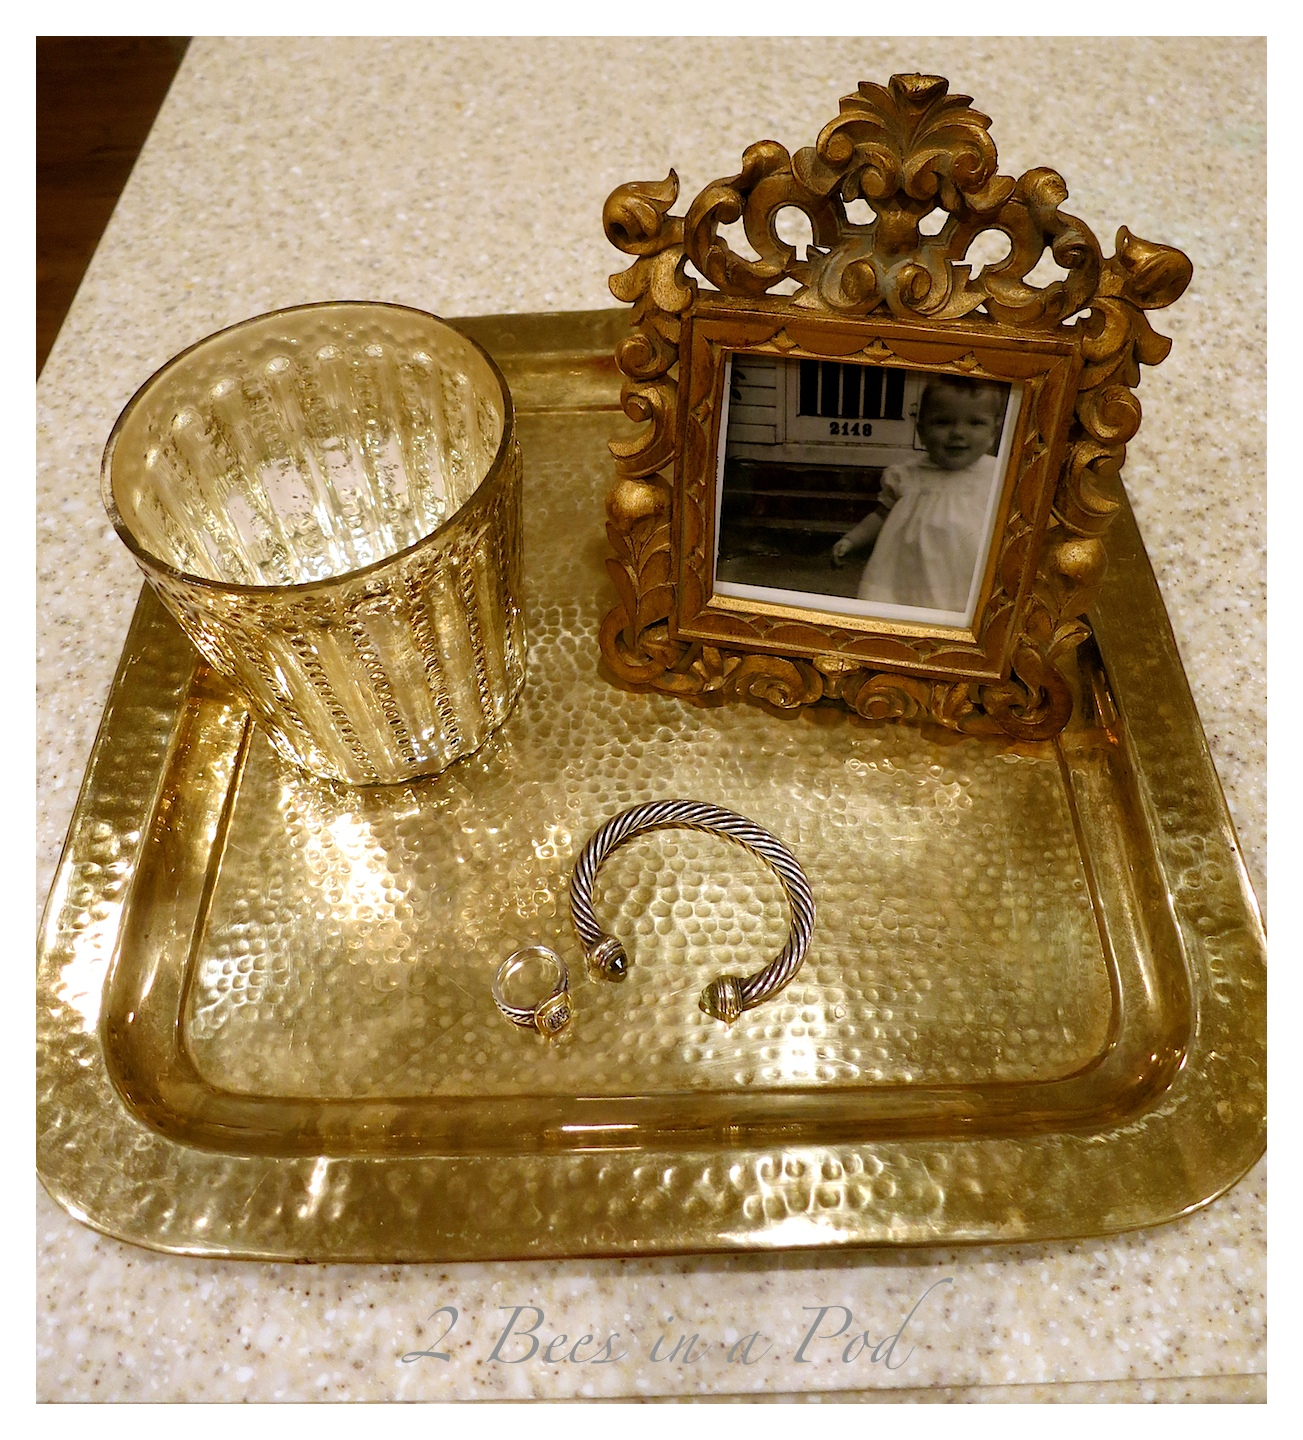 Thrift Store Brass Tray…